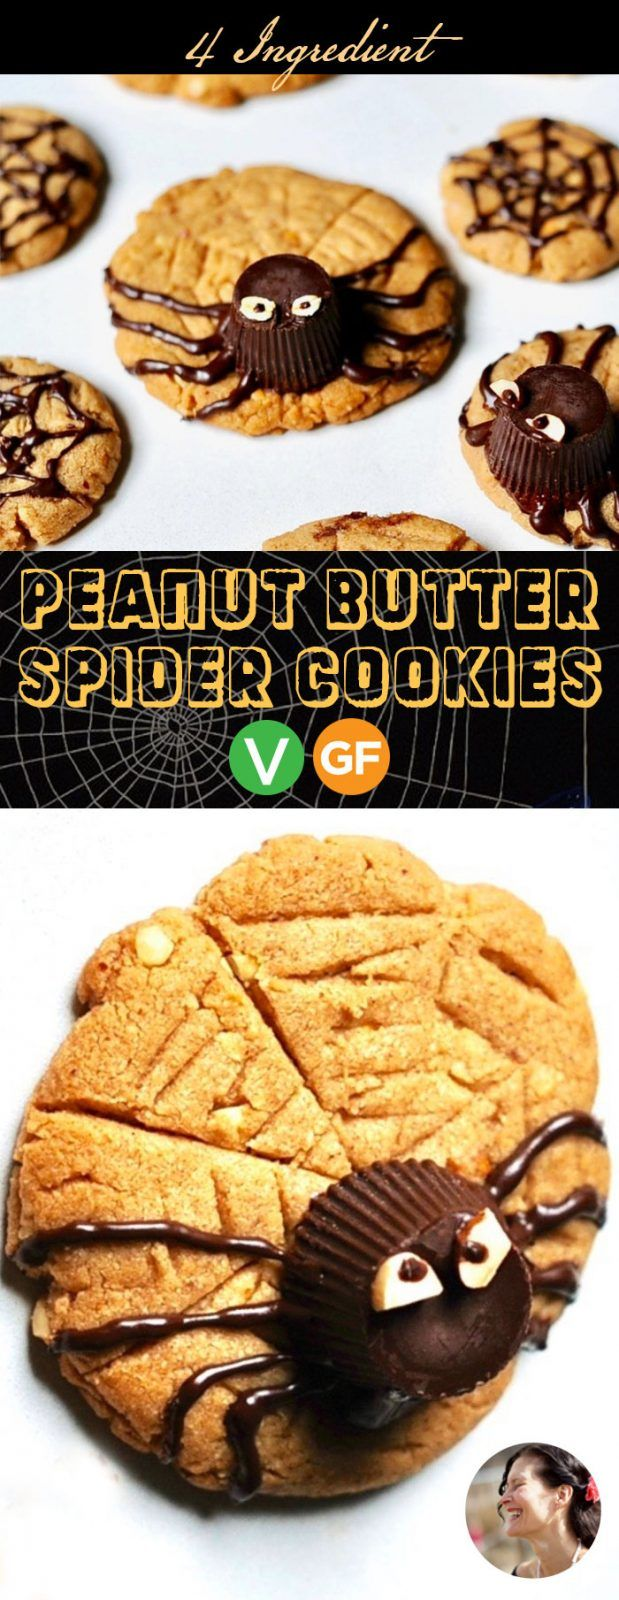 how to make spider cookies